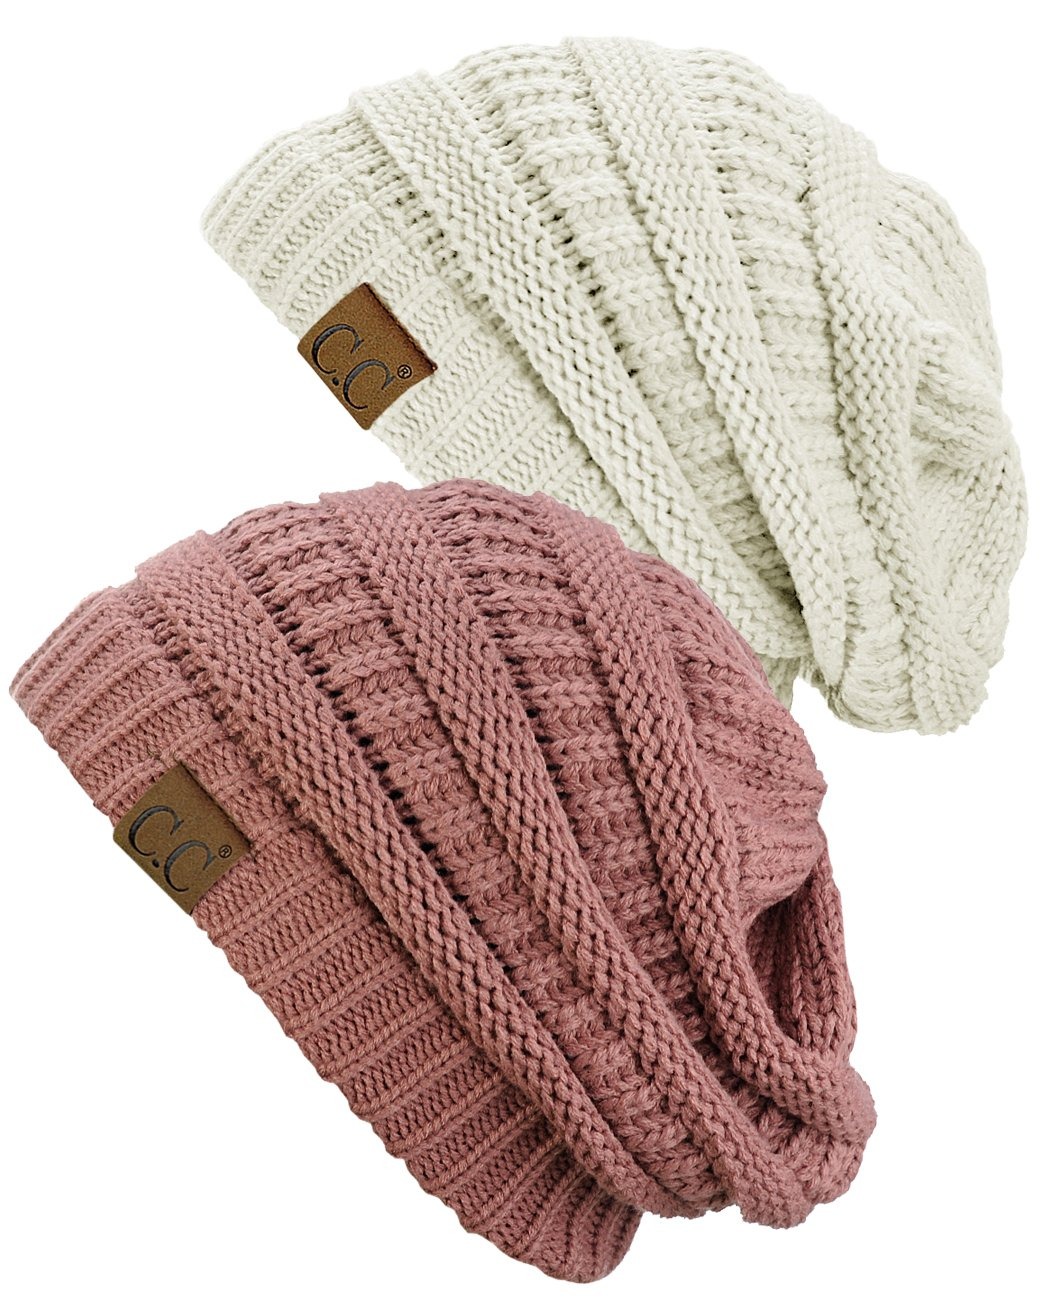 C.C Trendy Warm Chunky Soft Stretch Cable Knit Beanie Skully, 2 Pack Ivory/Mauve by C.C